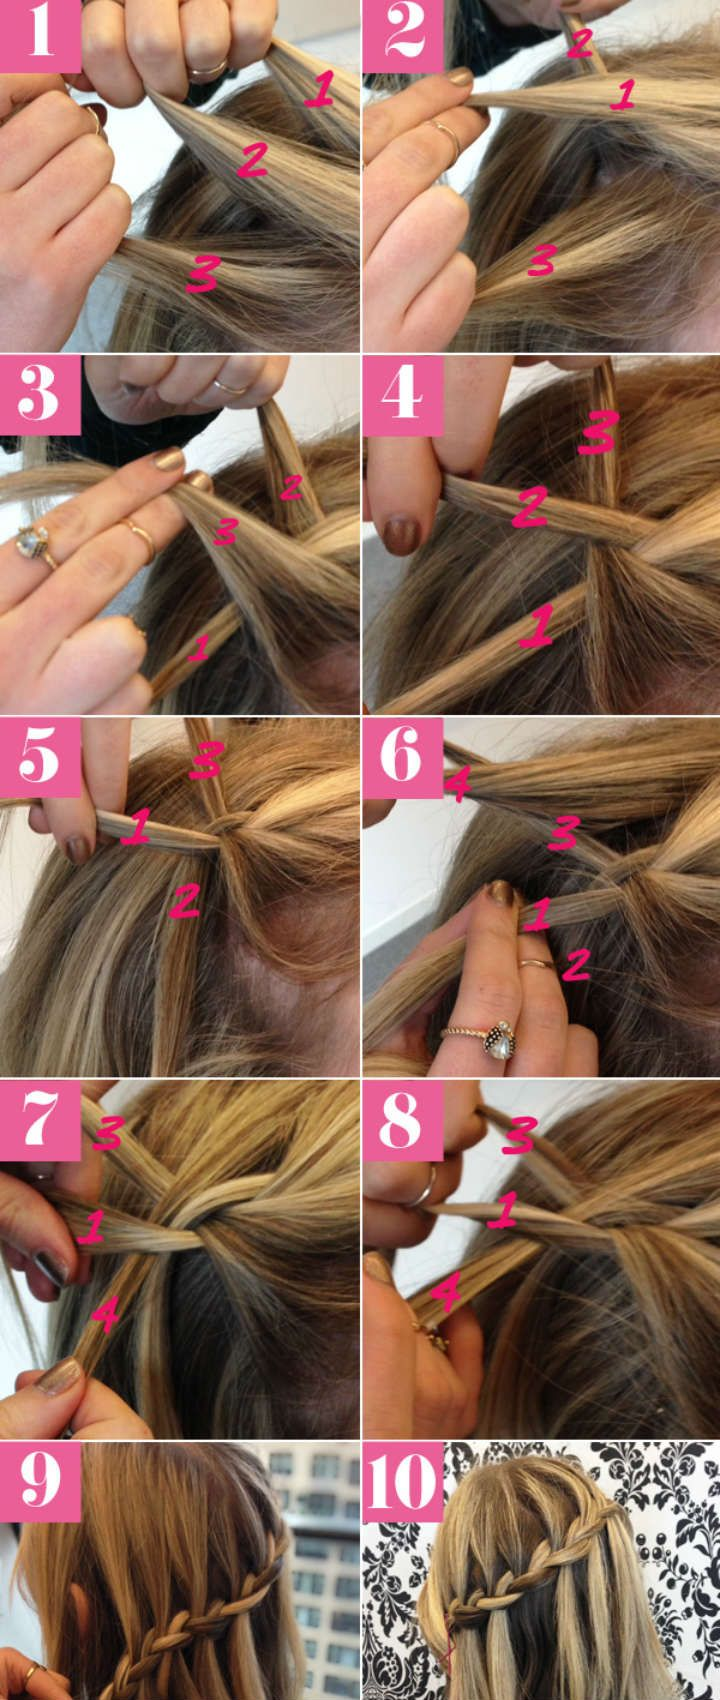 10 Steps to a Pretty Waterfall Braid, I've been wanting to do this forever!